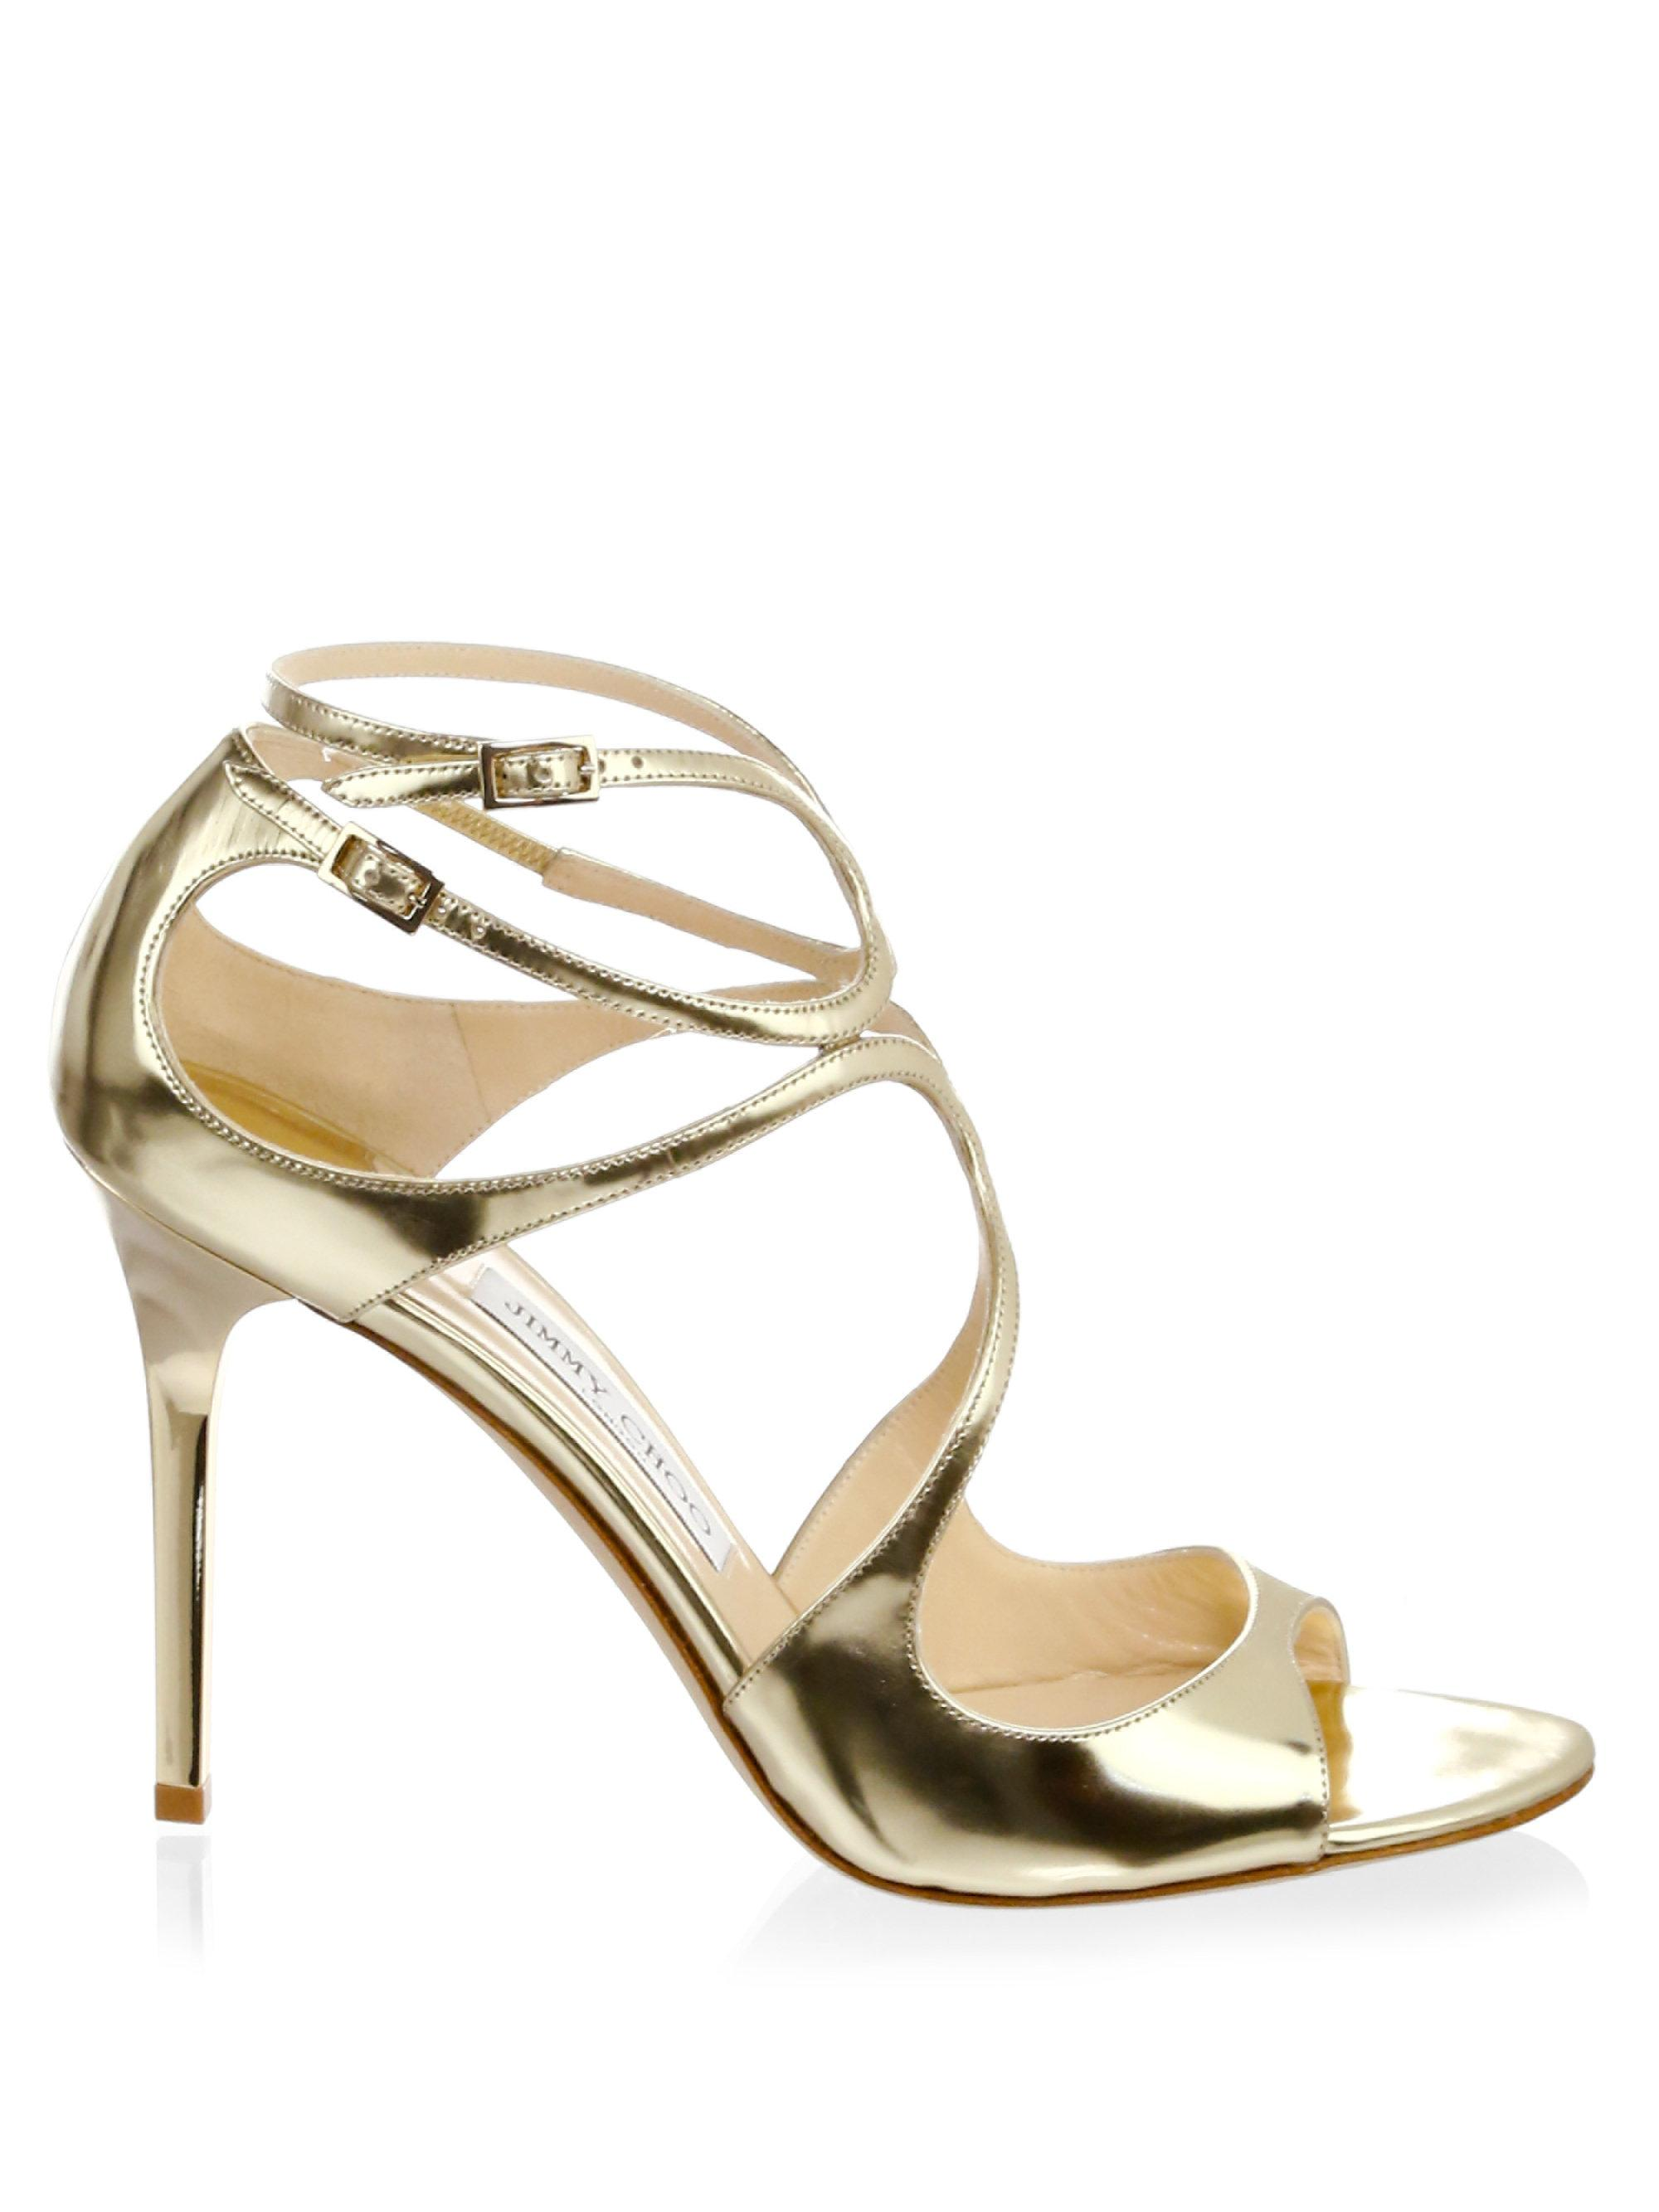 Jimmy Choo Pat Crossover Sandals enjoy for sale a7RCpETC2T